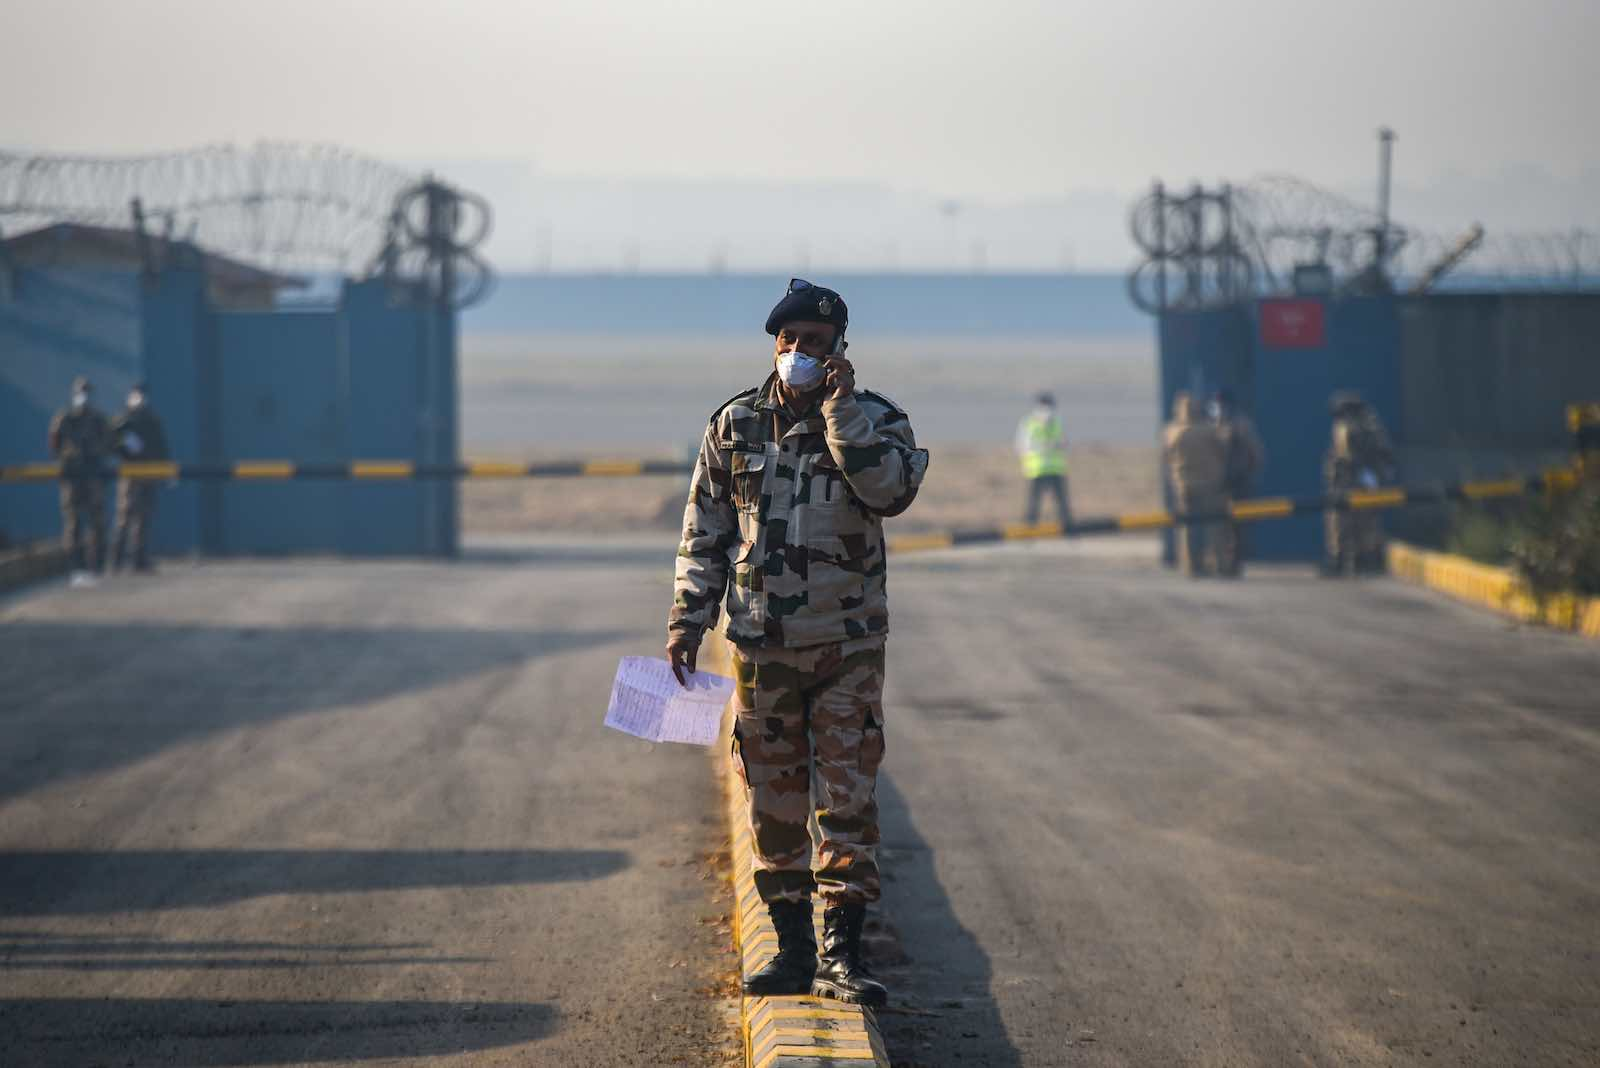 A guard at Indira Gandhi International Airport following the evacuation from Wuhan province in China (Amal KS/Hindustan Times/Getty Images)